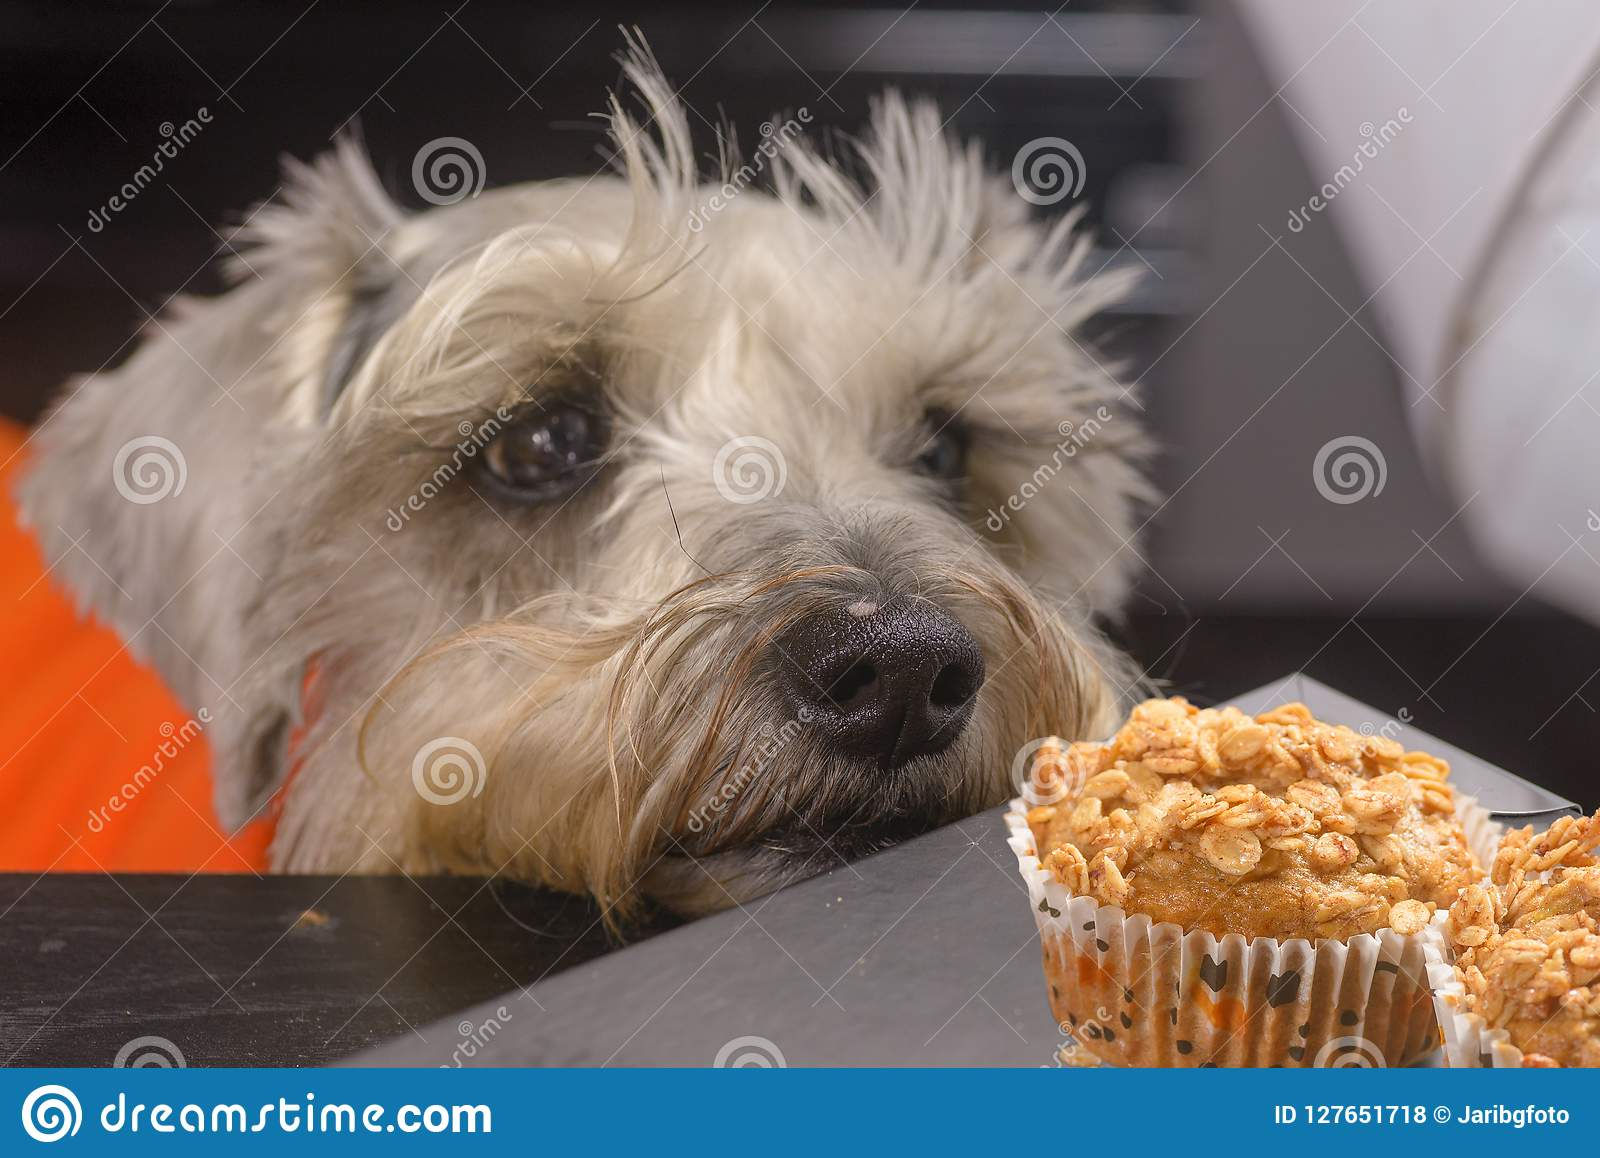 Schnauzer dog craving a muffin